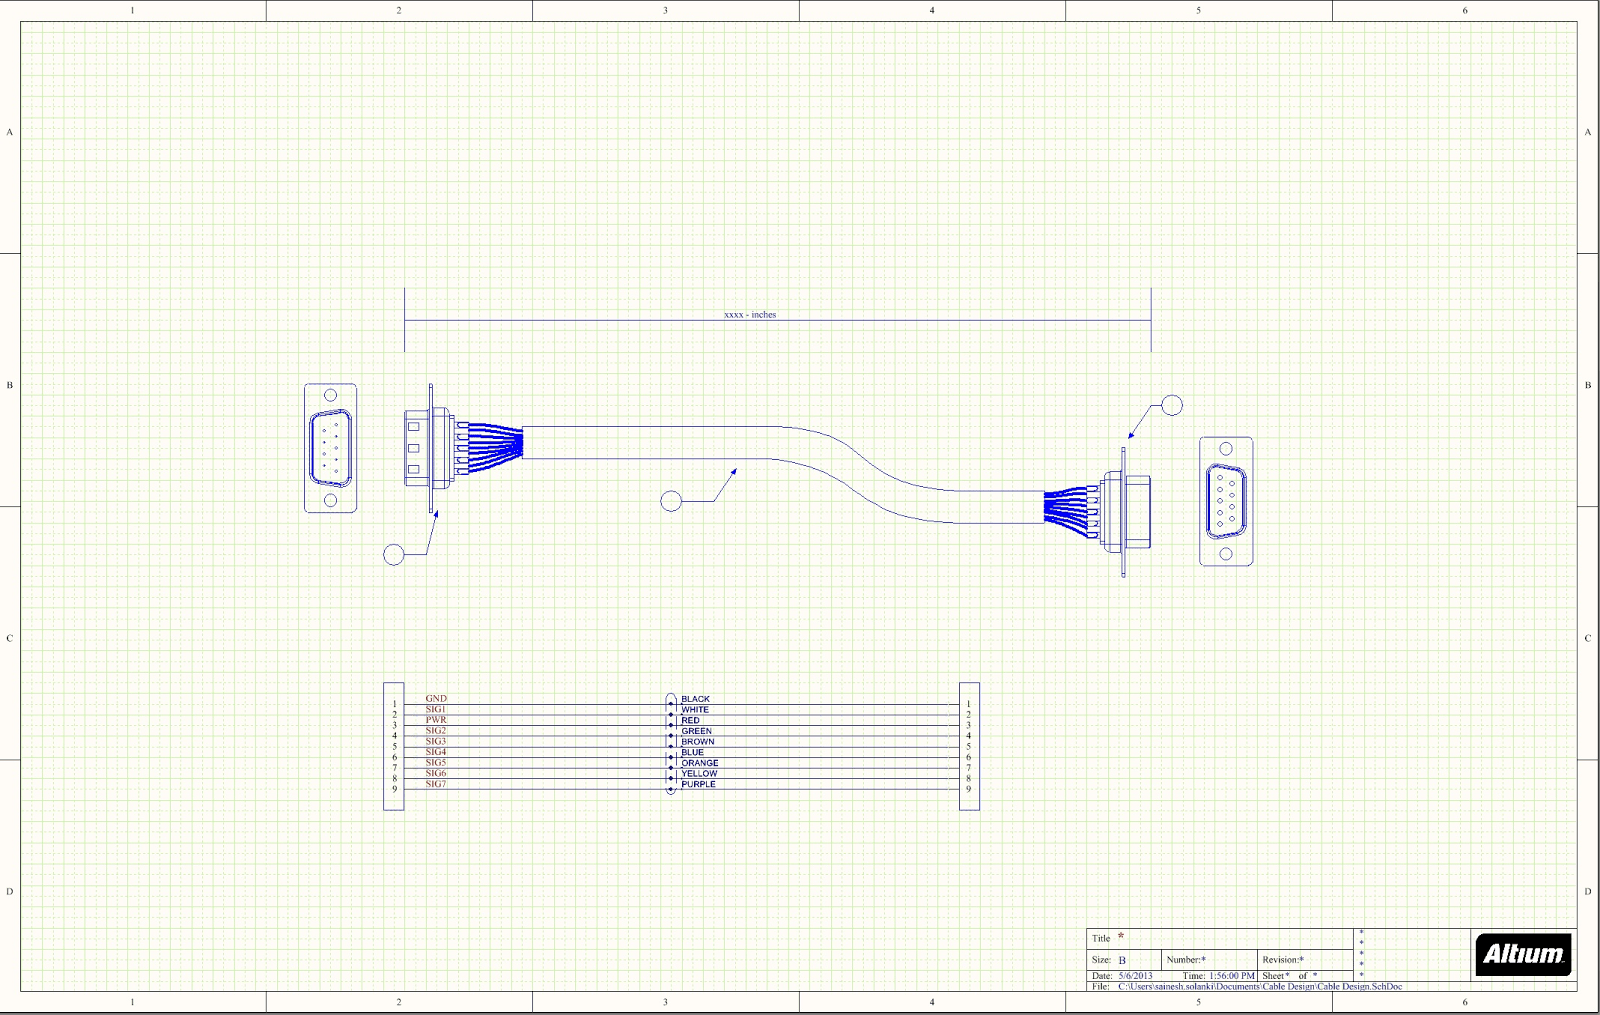 wire harness assembly drawing